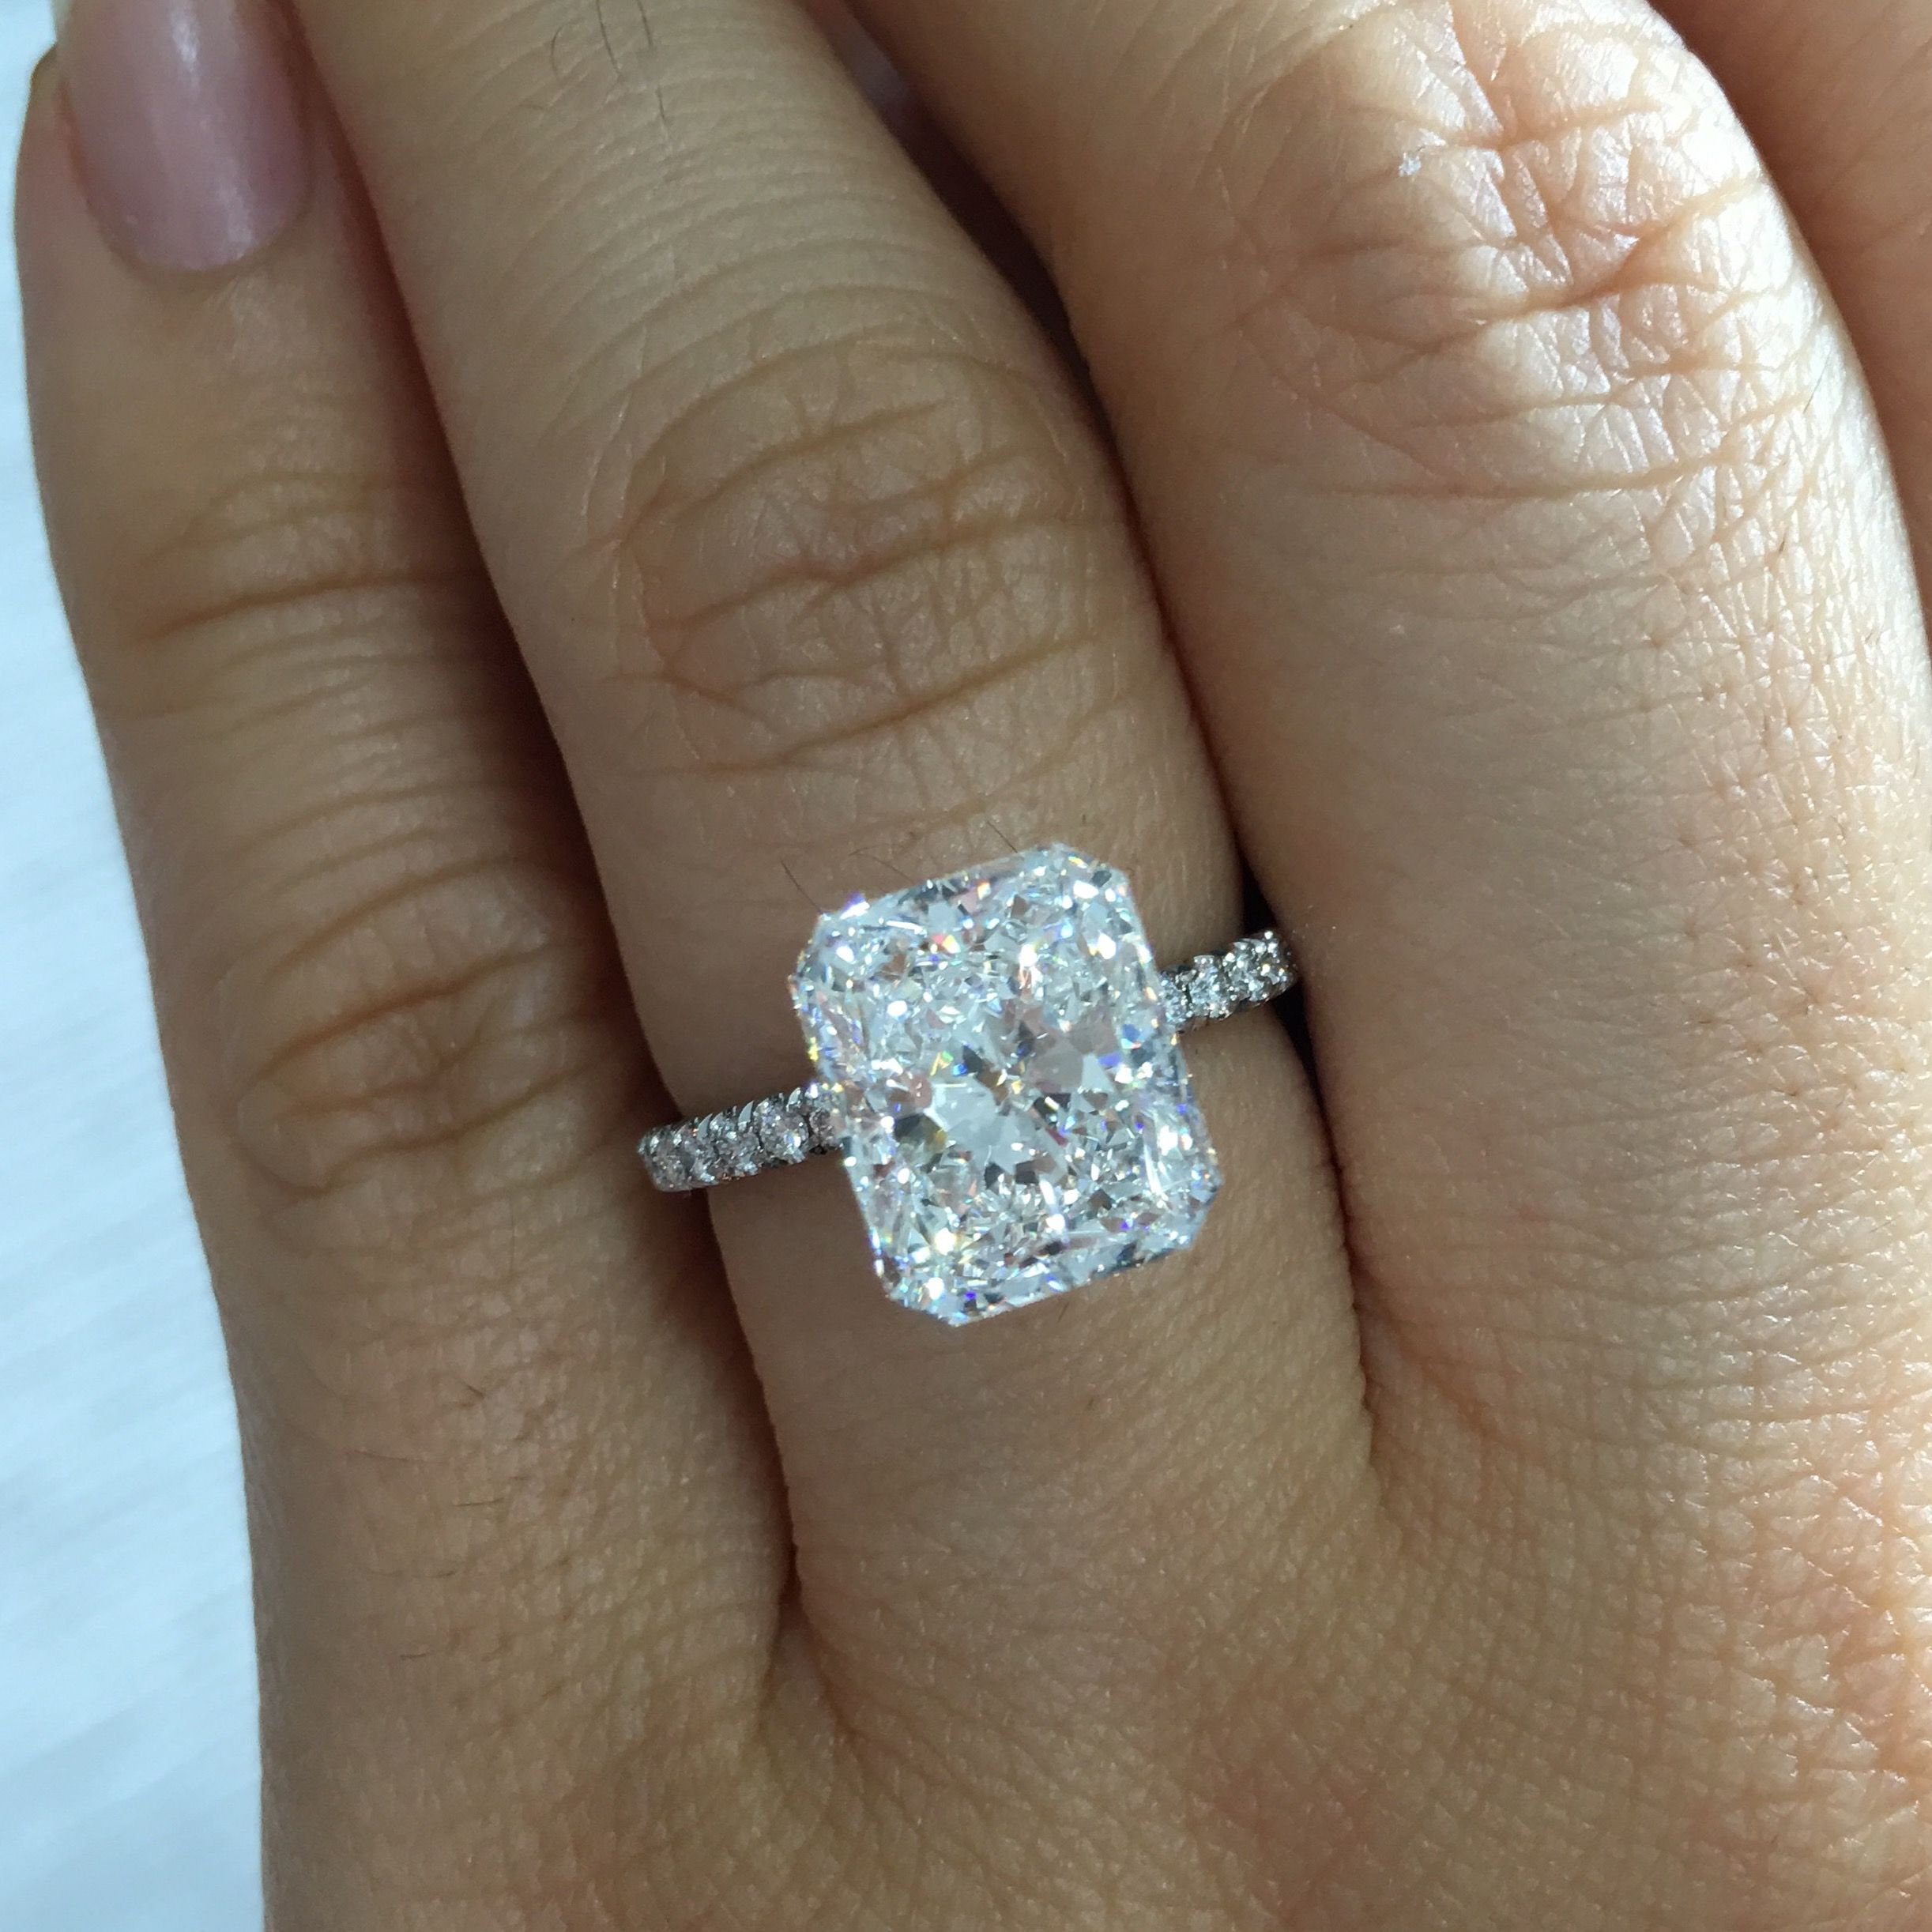 is wixon category rectangular pear and for rare cutters find asymmetrical wedding jewelers to shape they diamond with cushion its rings weddings challenge archives a properly engagements cut are unique perfect special